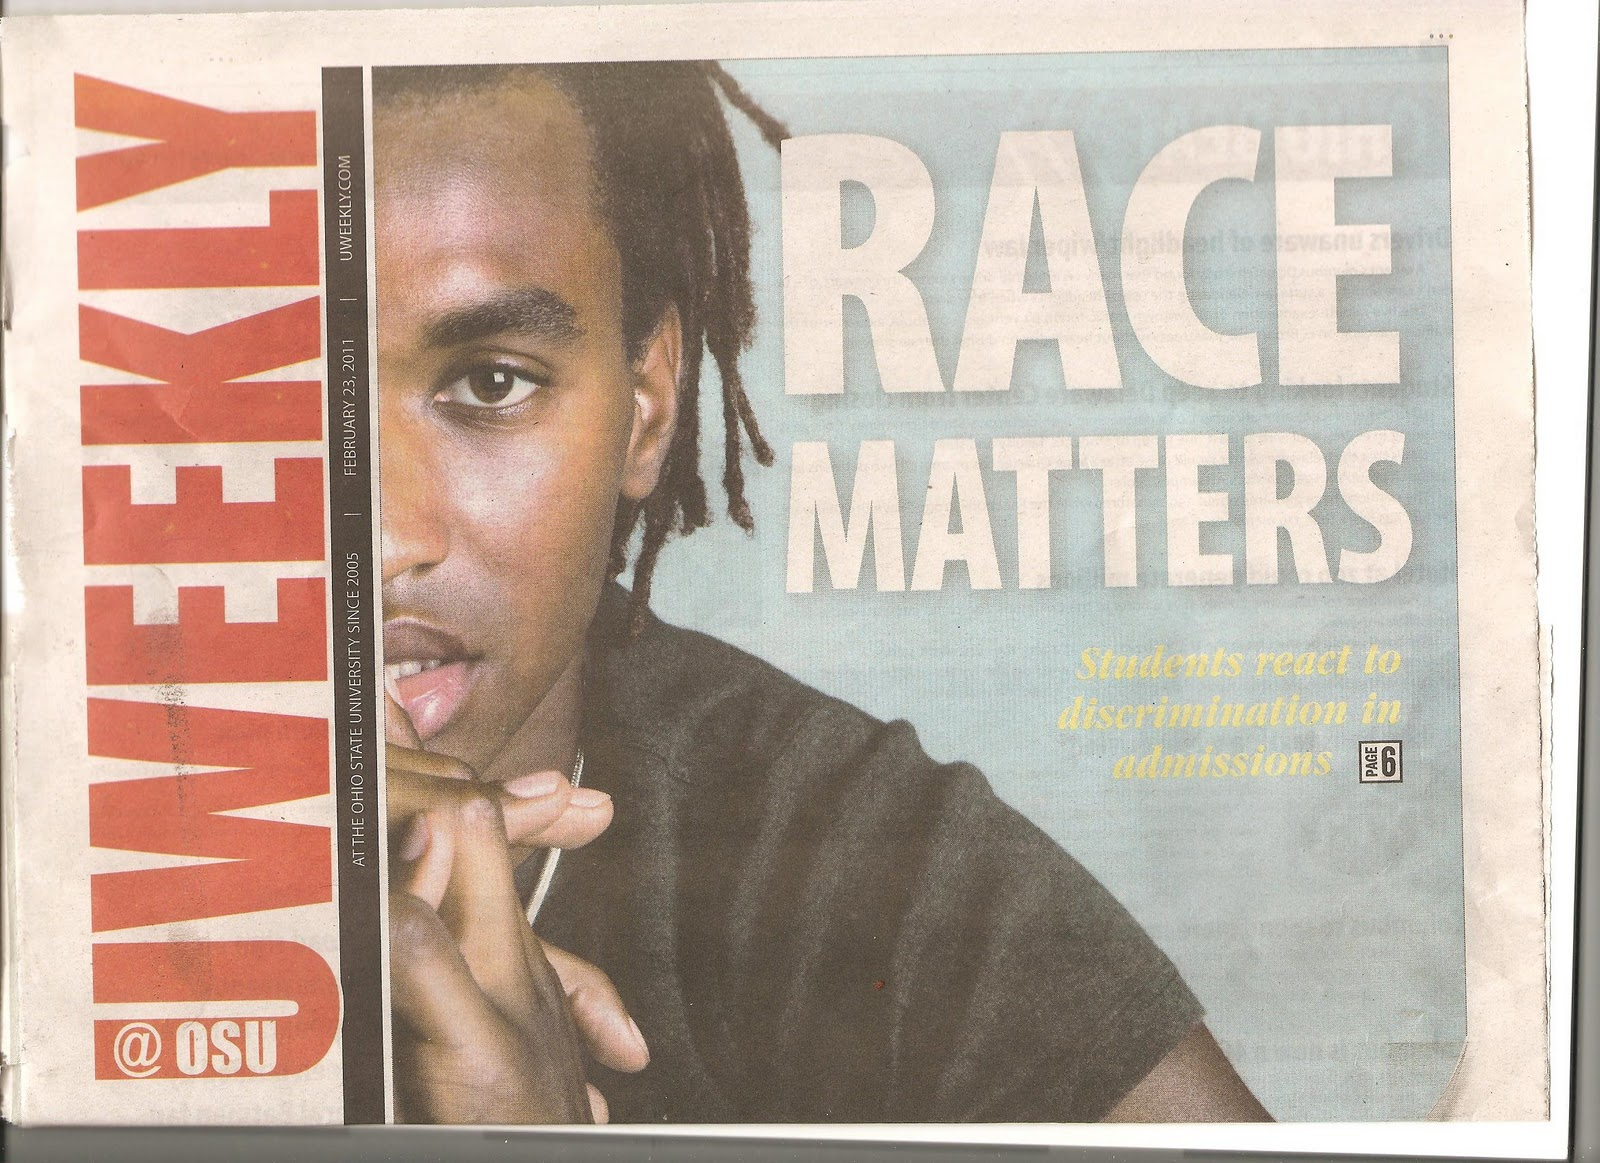 race matter essay Race and ethnicity are physical attributes of people, but also ways of seeing and  understanding the world media plays an influential role in shaping how we.